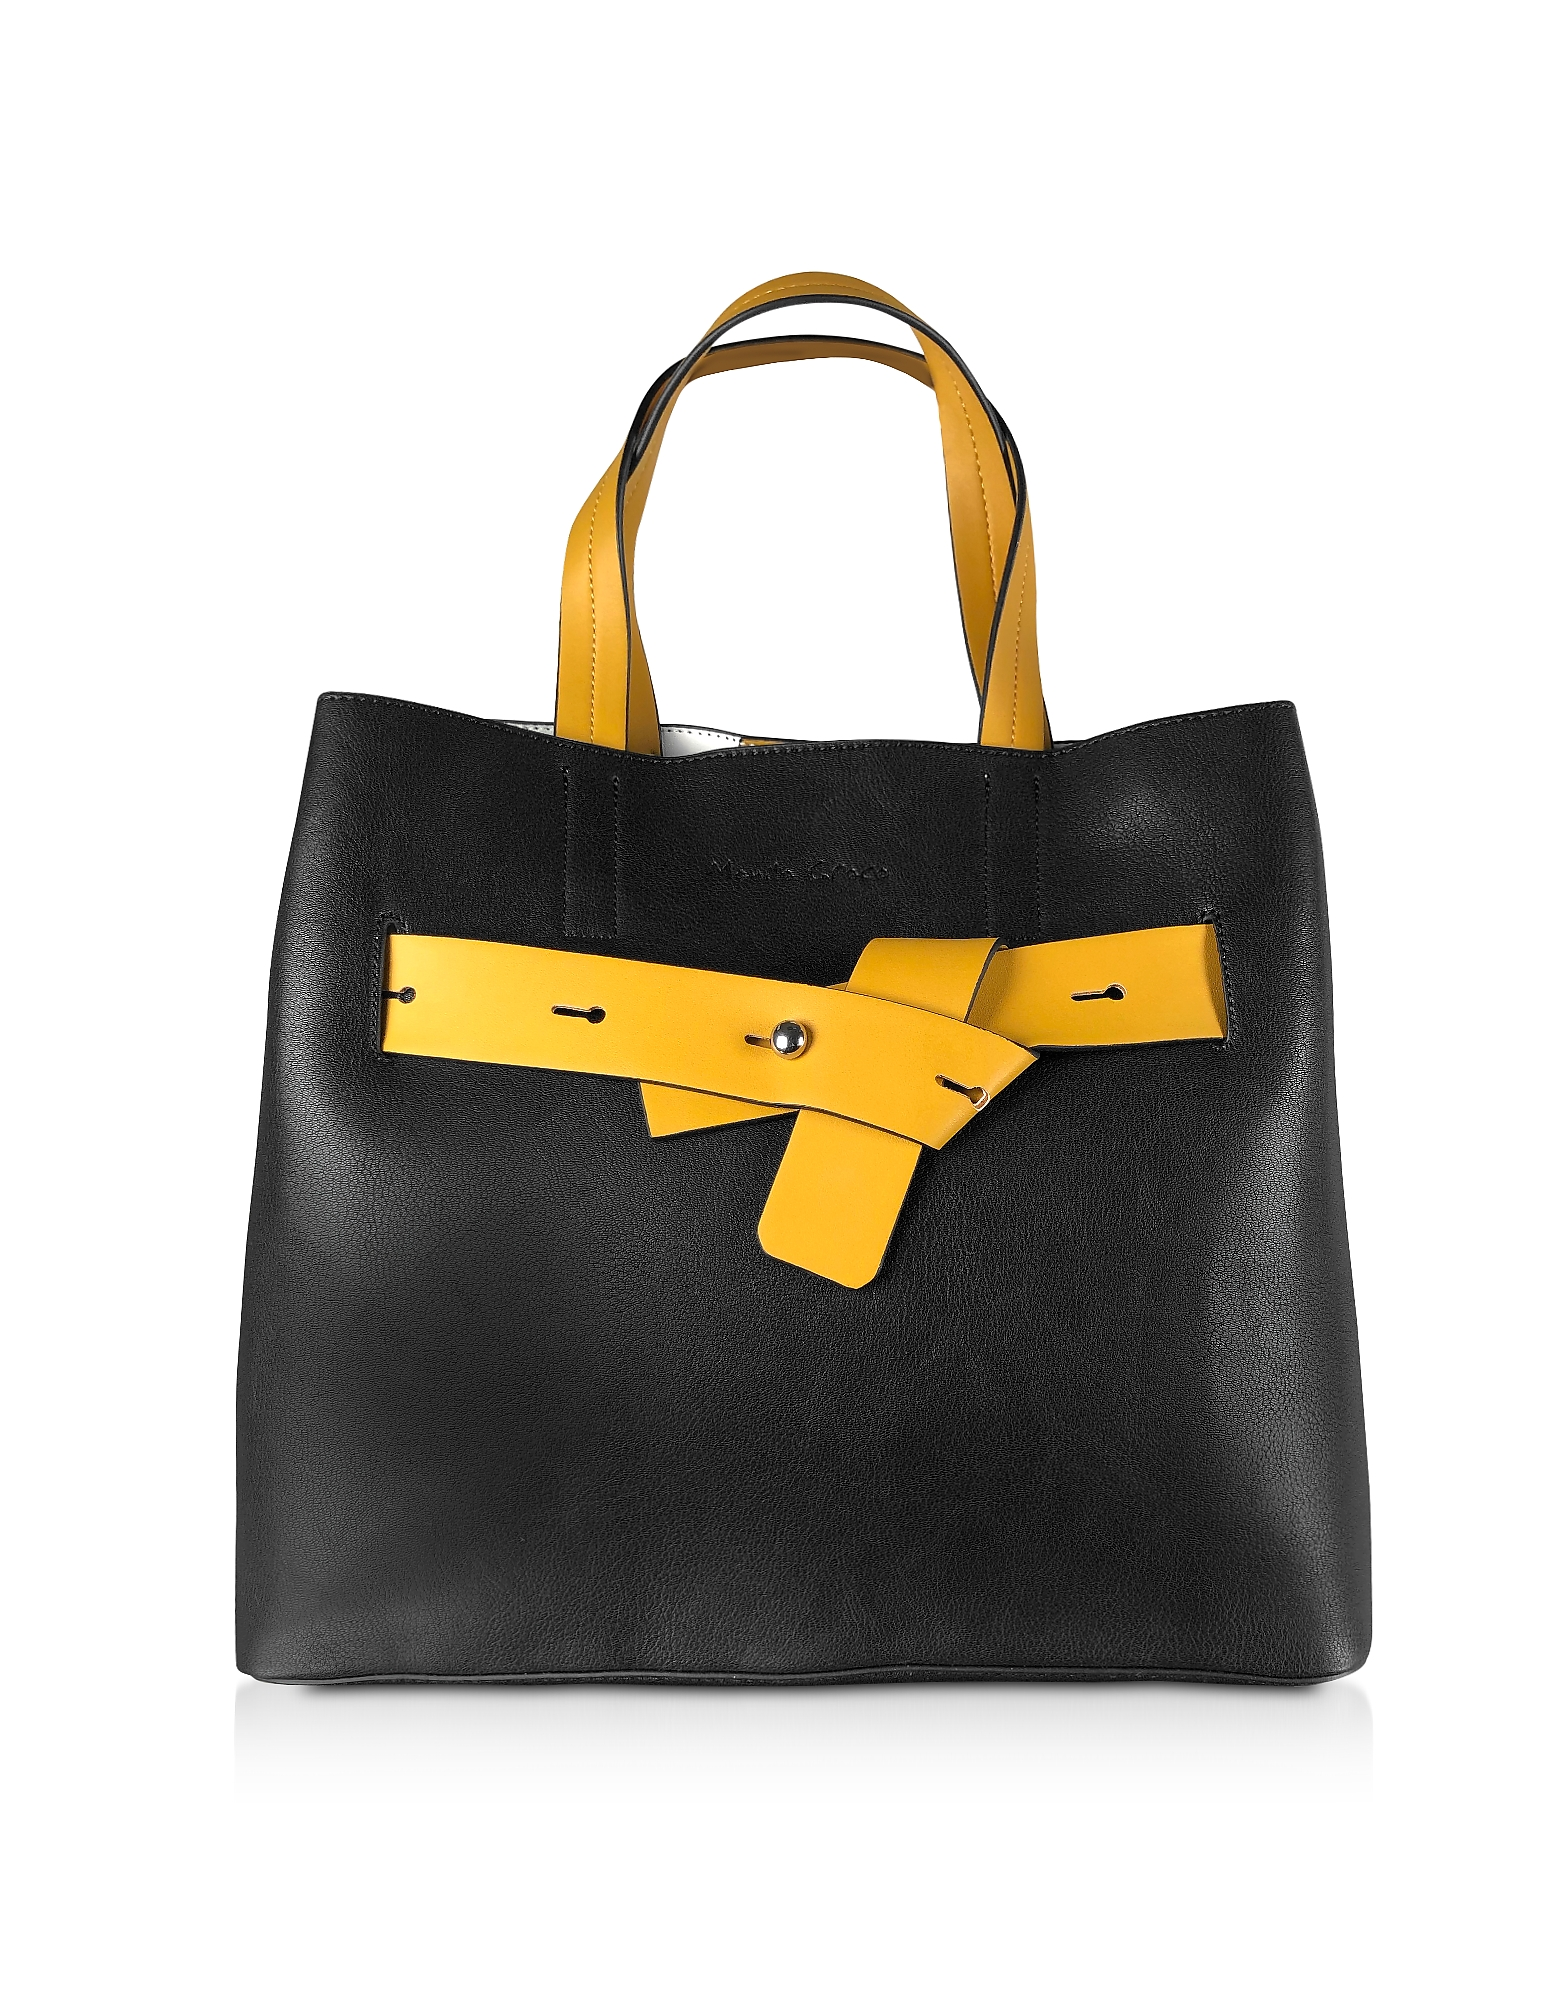 Manila Grace Designer Handbags, Black & Yellow Tote Bag